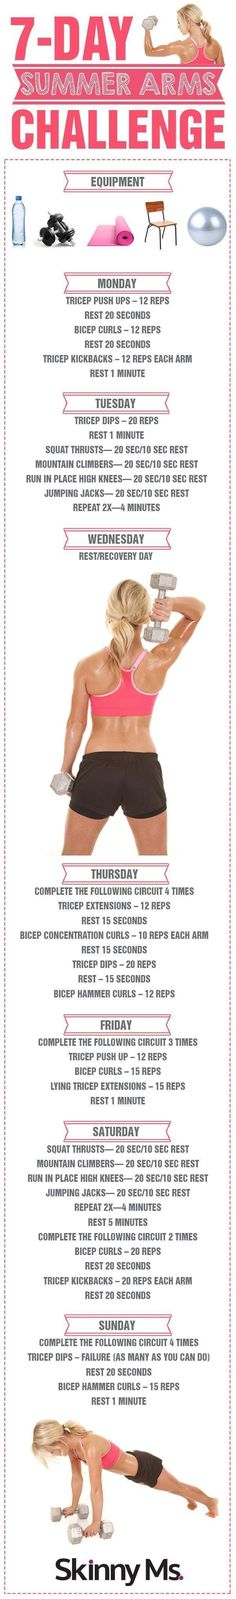 Arms Challenge - Seven Day Arm Workout Routine for Women 7 Day Summer Arms Challenge - there is no better time to get those beautifully toned and defined Day Summer Arms Challenge - there is no better time to get those beautifully toned and defined arms! Fitness Motivation, Fitness Diet, Health Fitness, Fitness Plan, Arm Challenge, Workout Challenge, Workout Plans, Challenge Accepted, Workout Routines For Women